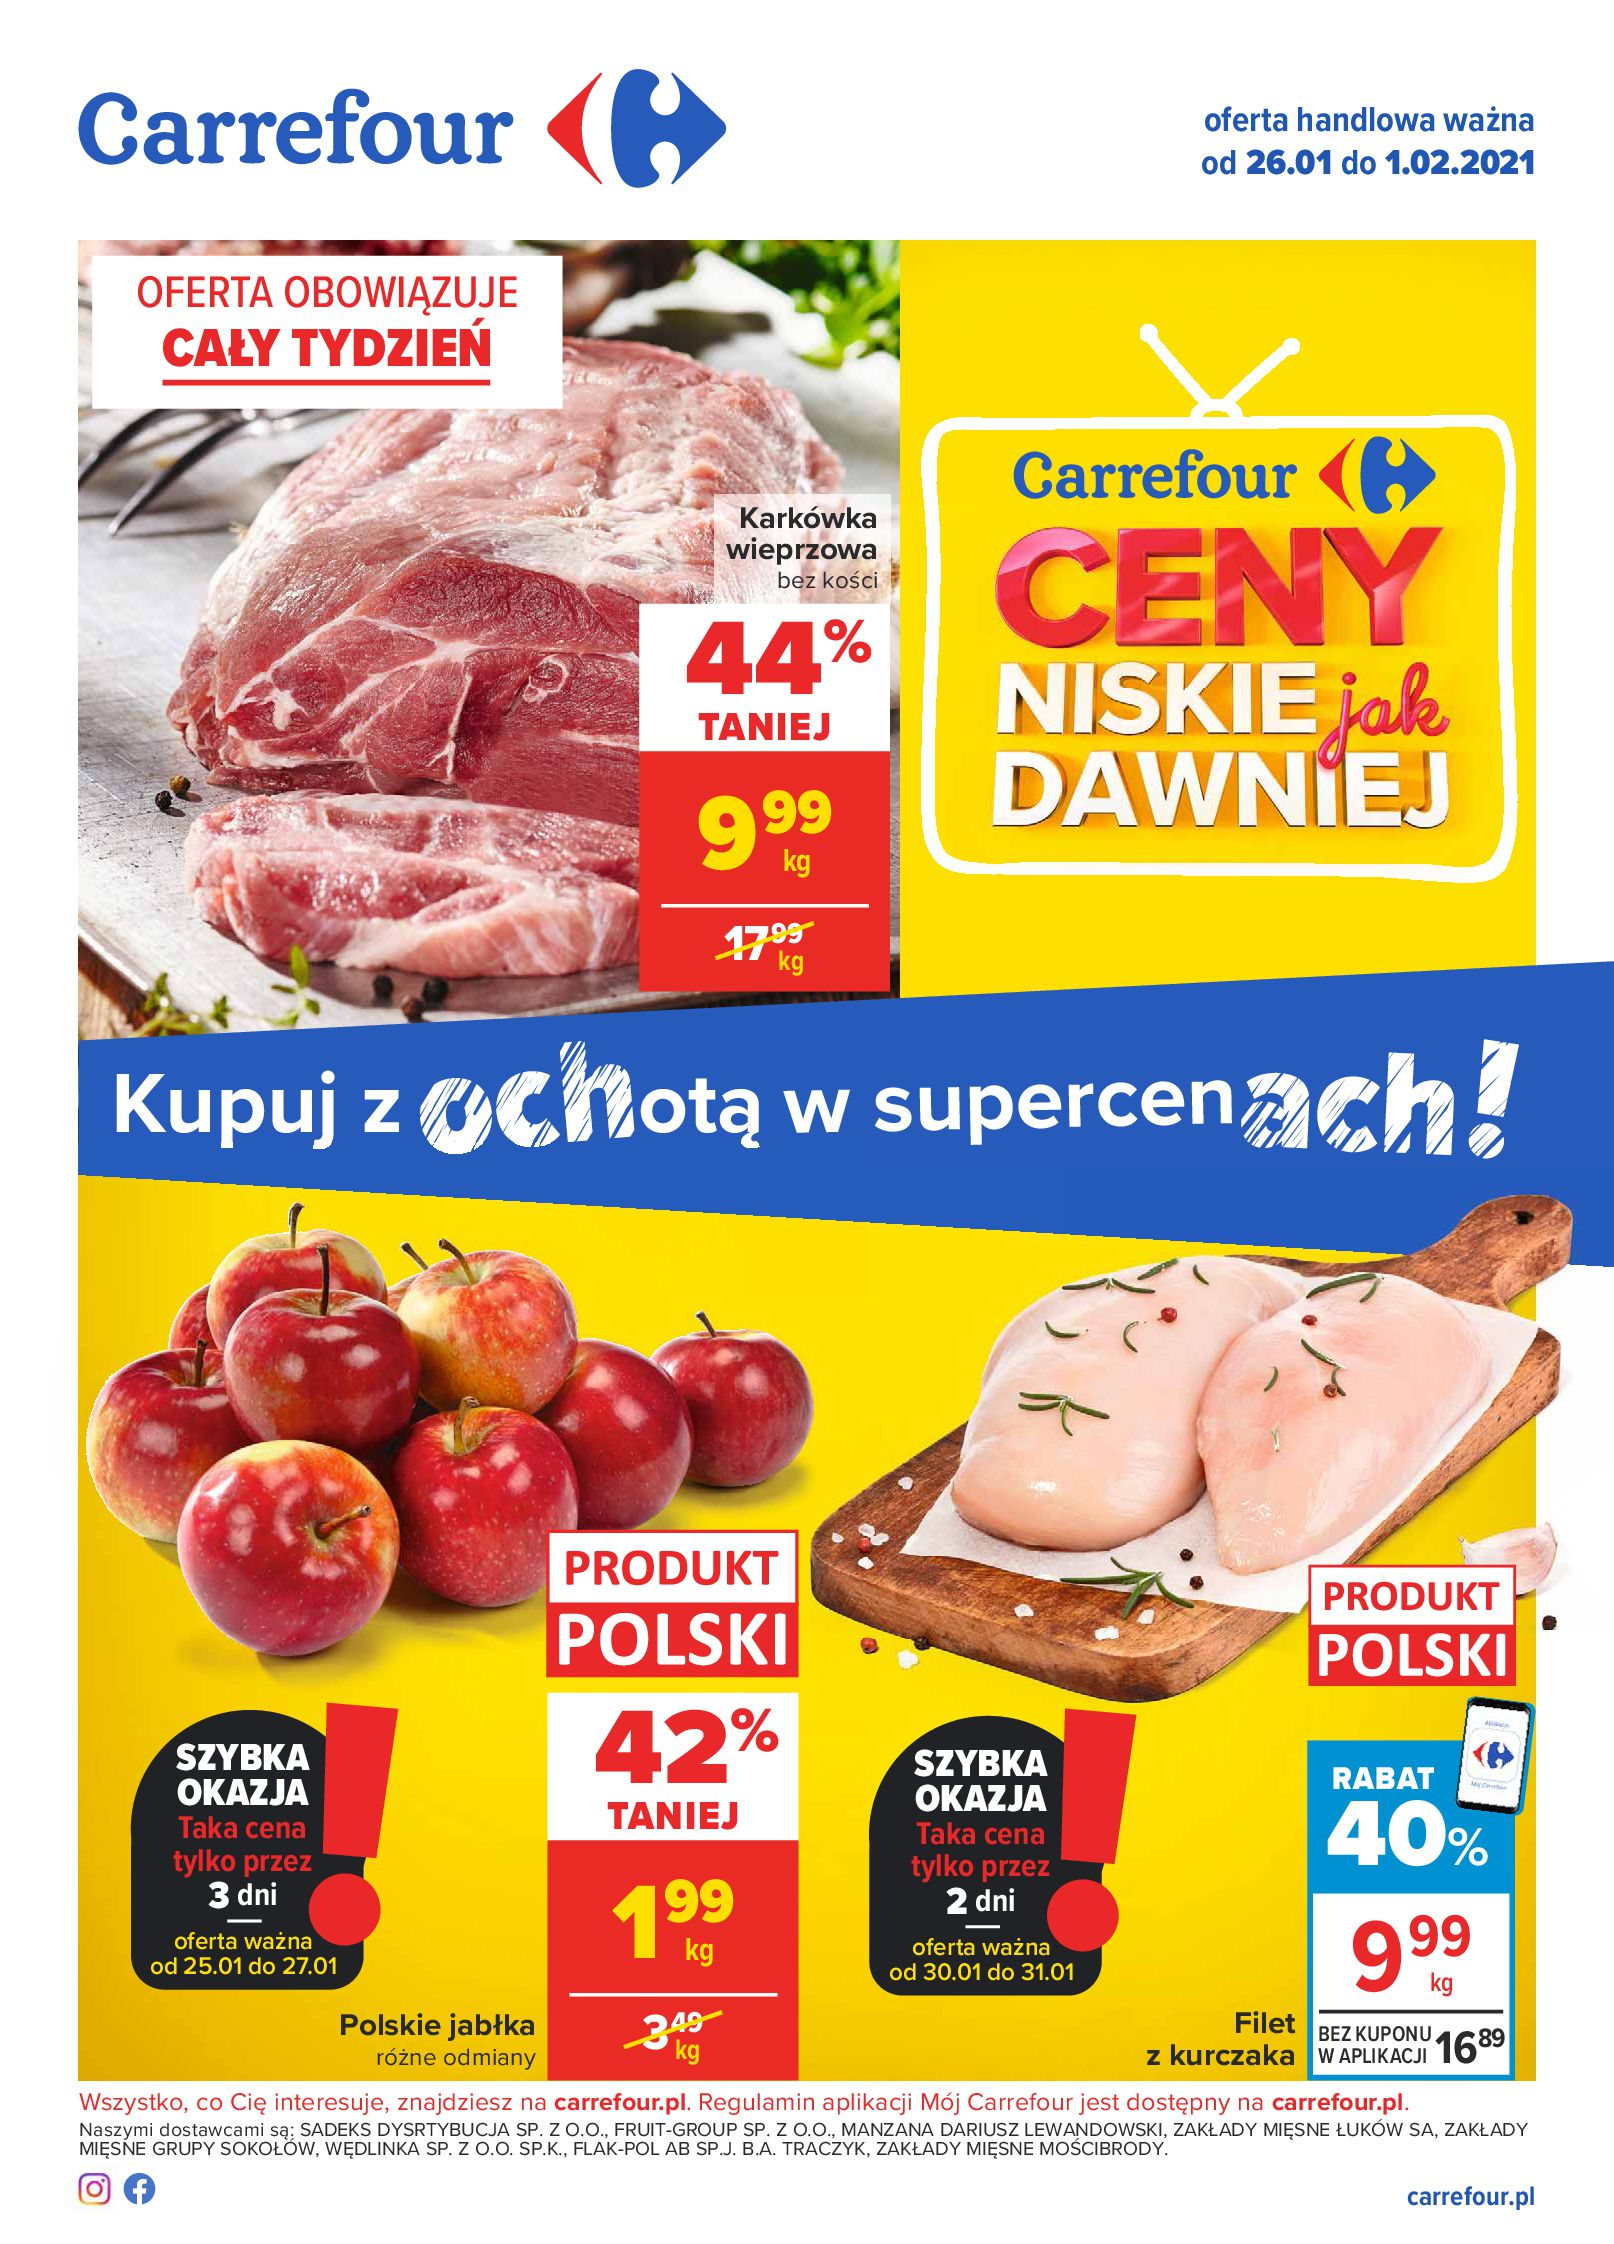 Carrefour:  Gazetka Carrefour od 26.01 25.01.2021